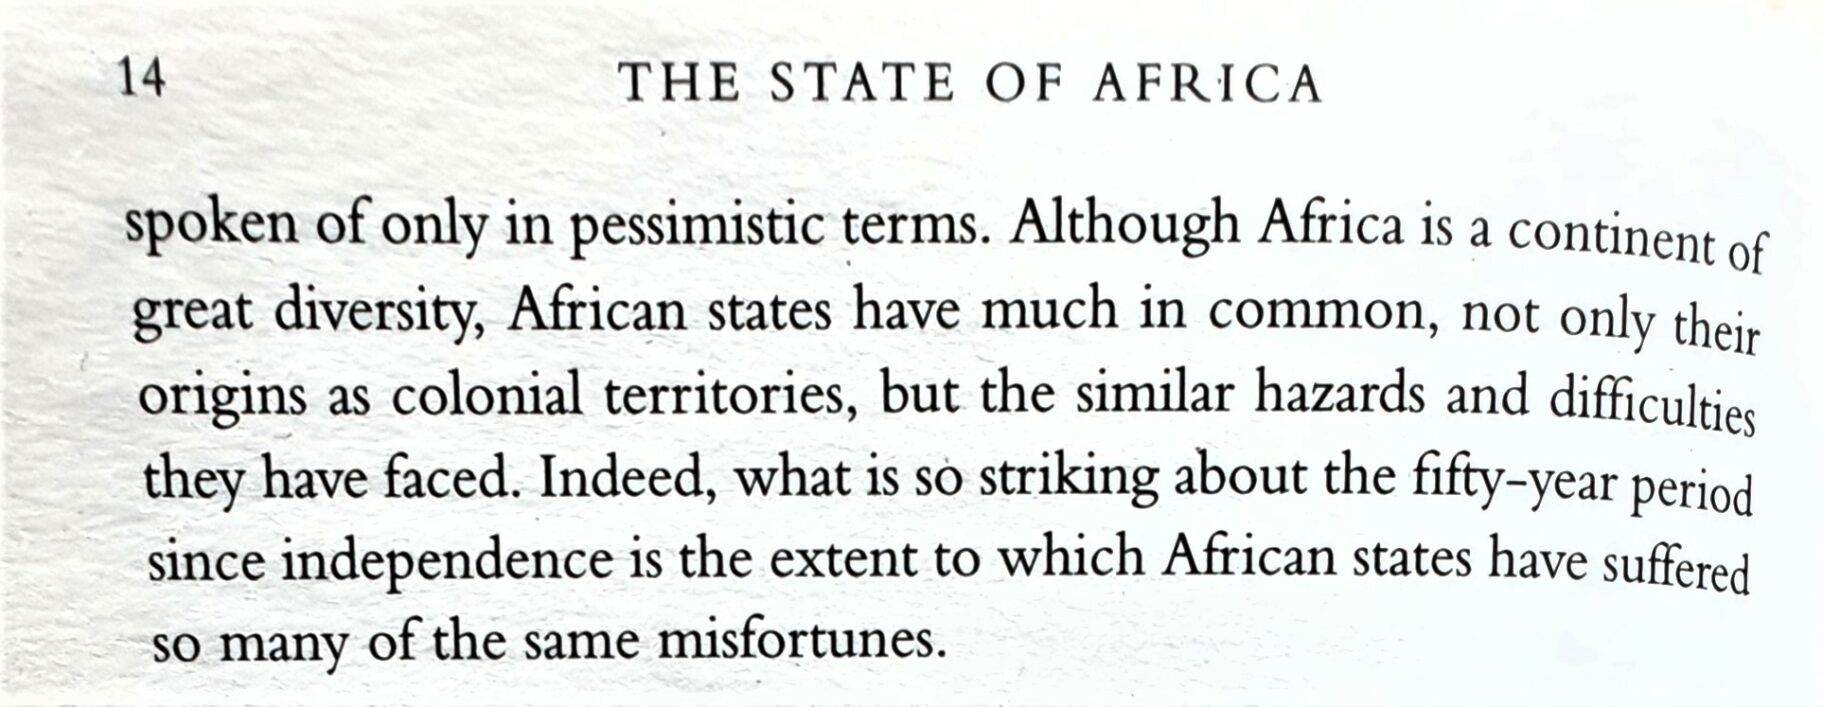 State of Africa1